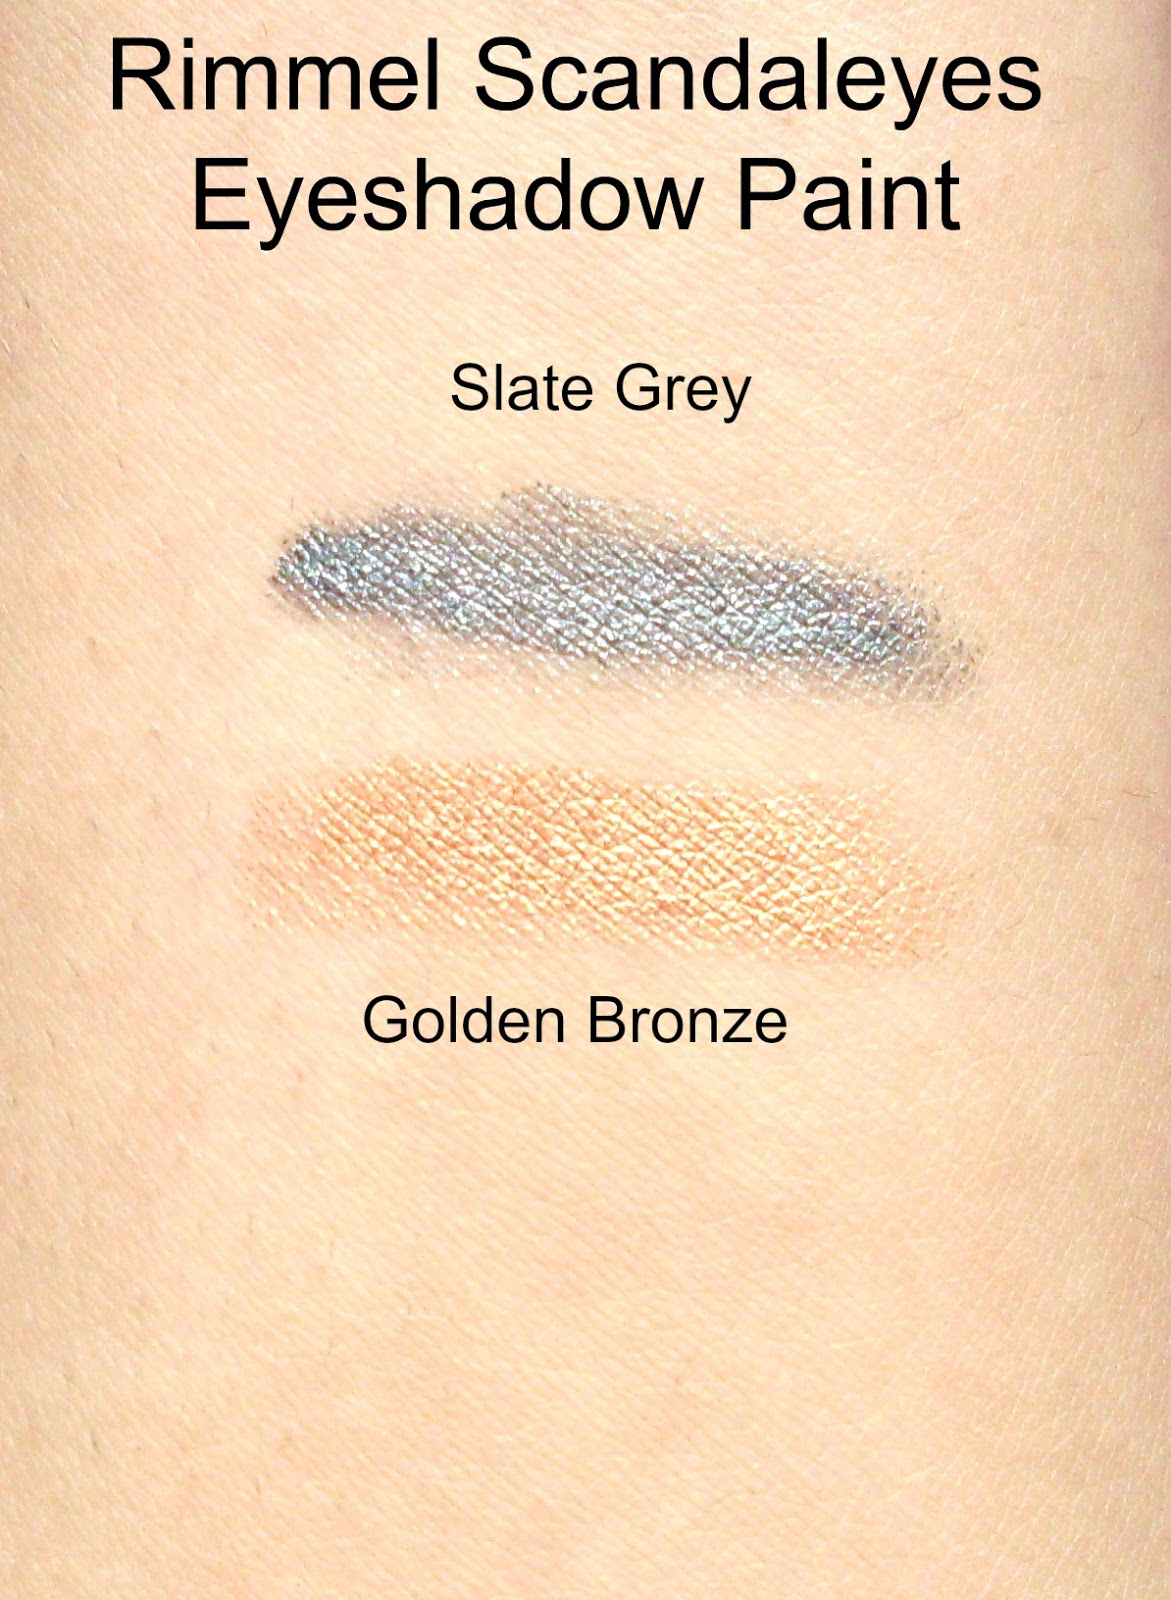 Rimmel Scandaleyes eyeshdaow swatches in golden bronze and slate grey